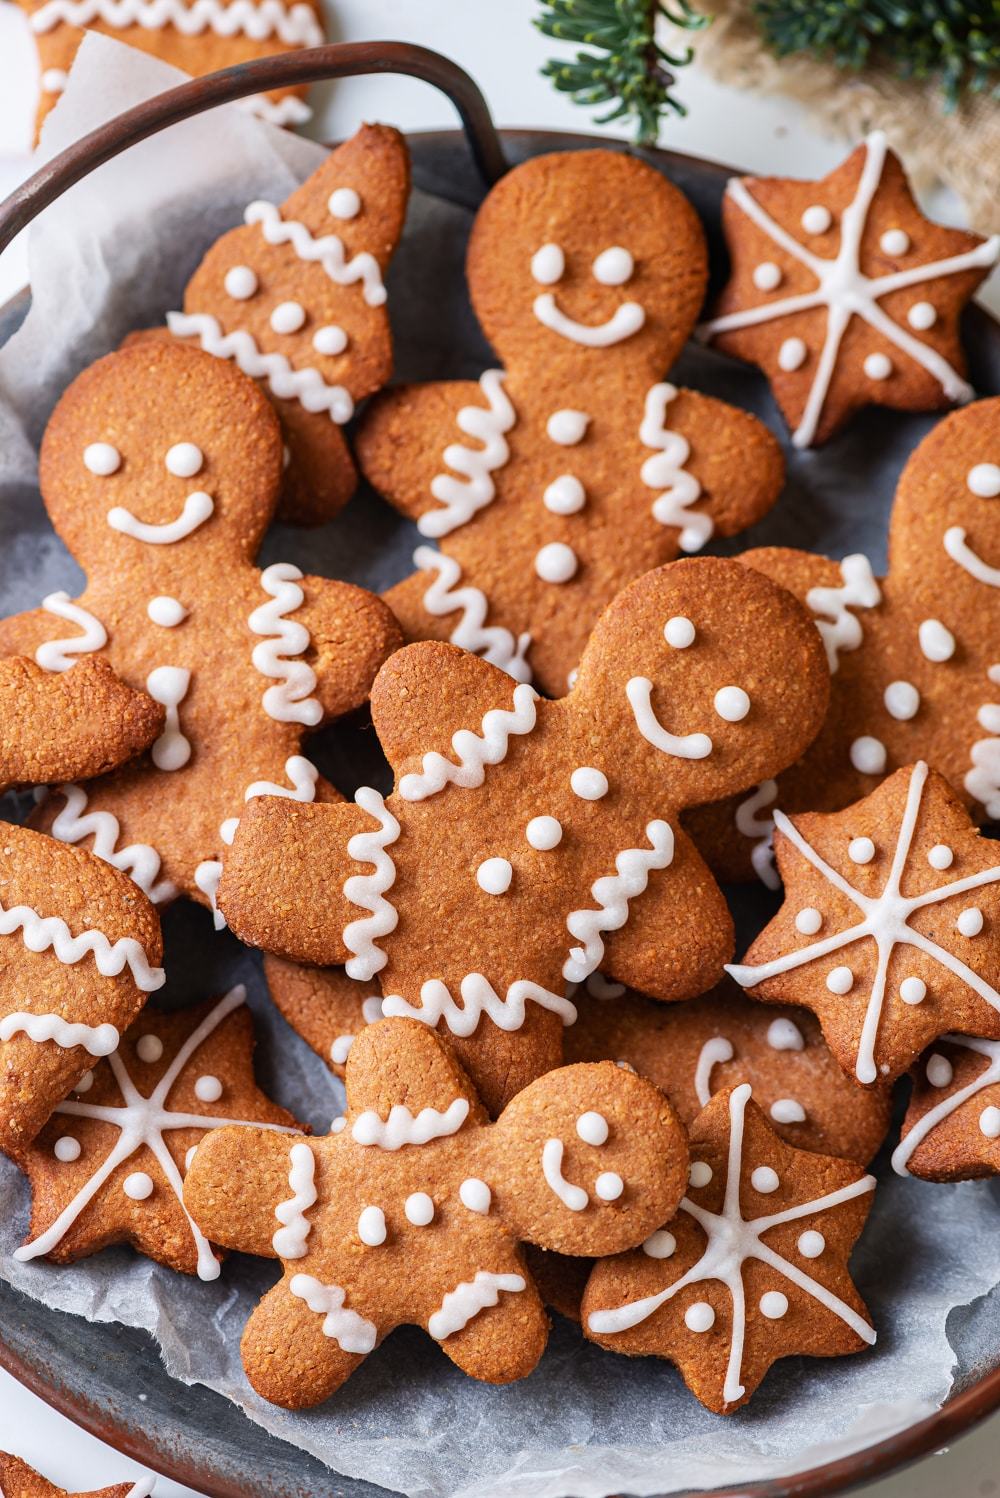 Gingerbread cookies on top of parchment paper on a grey plate.